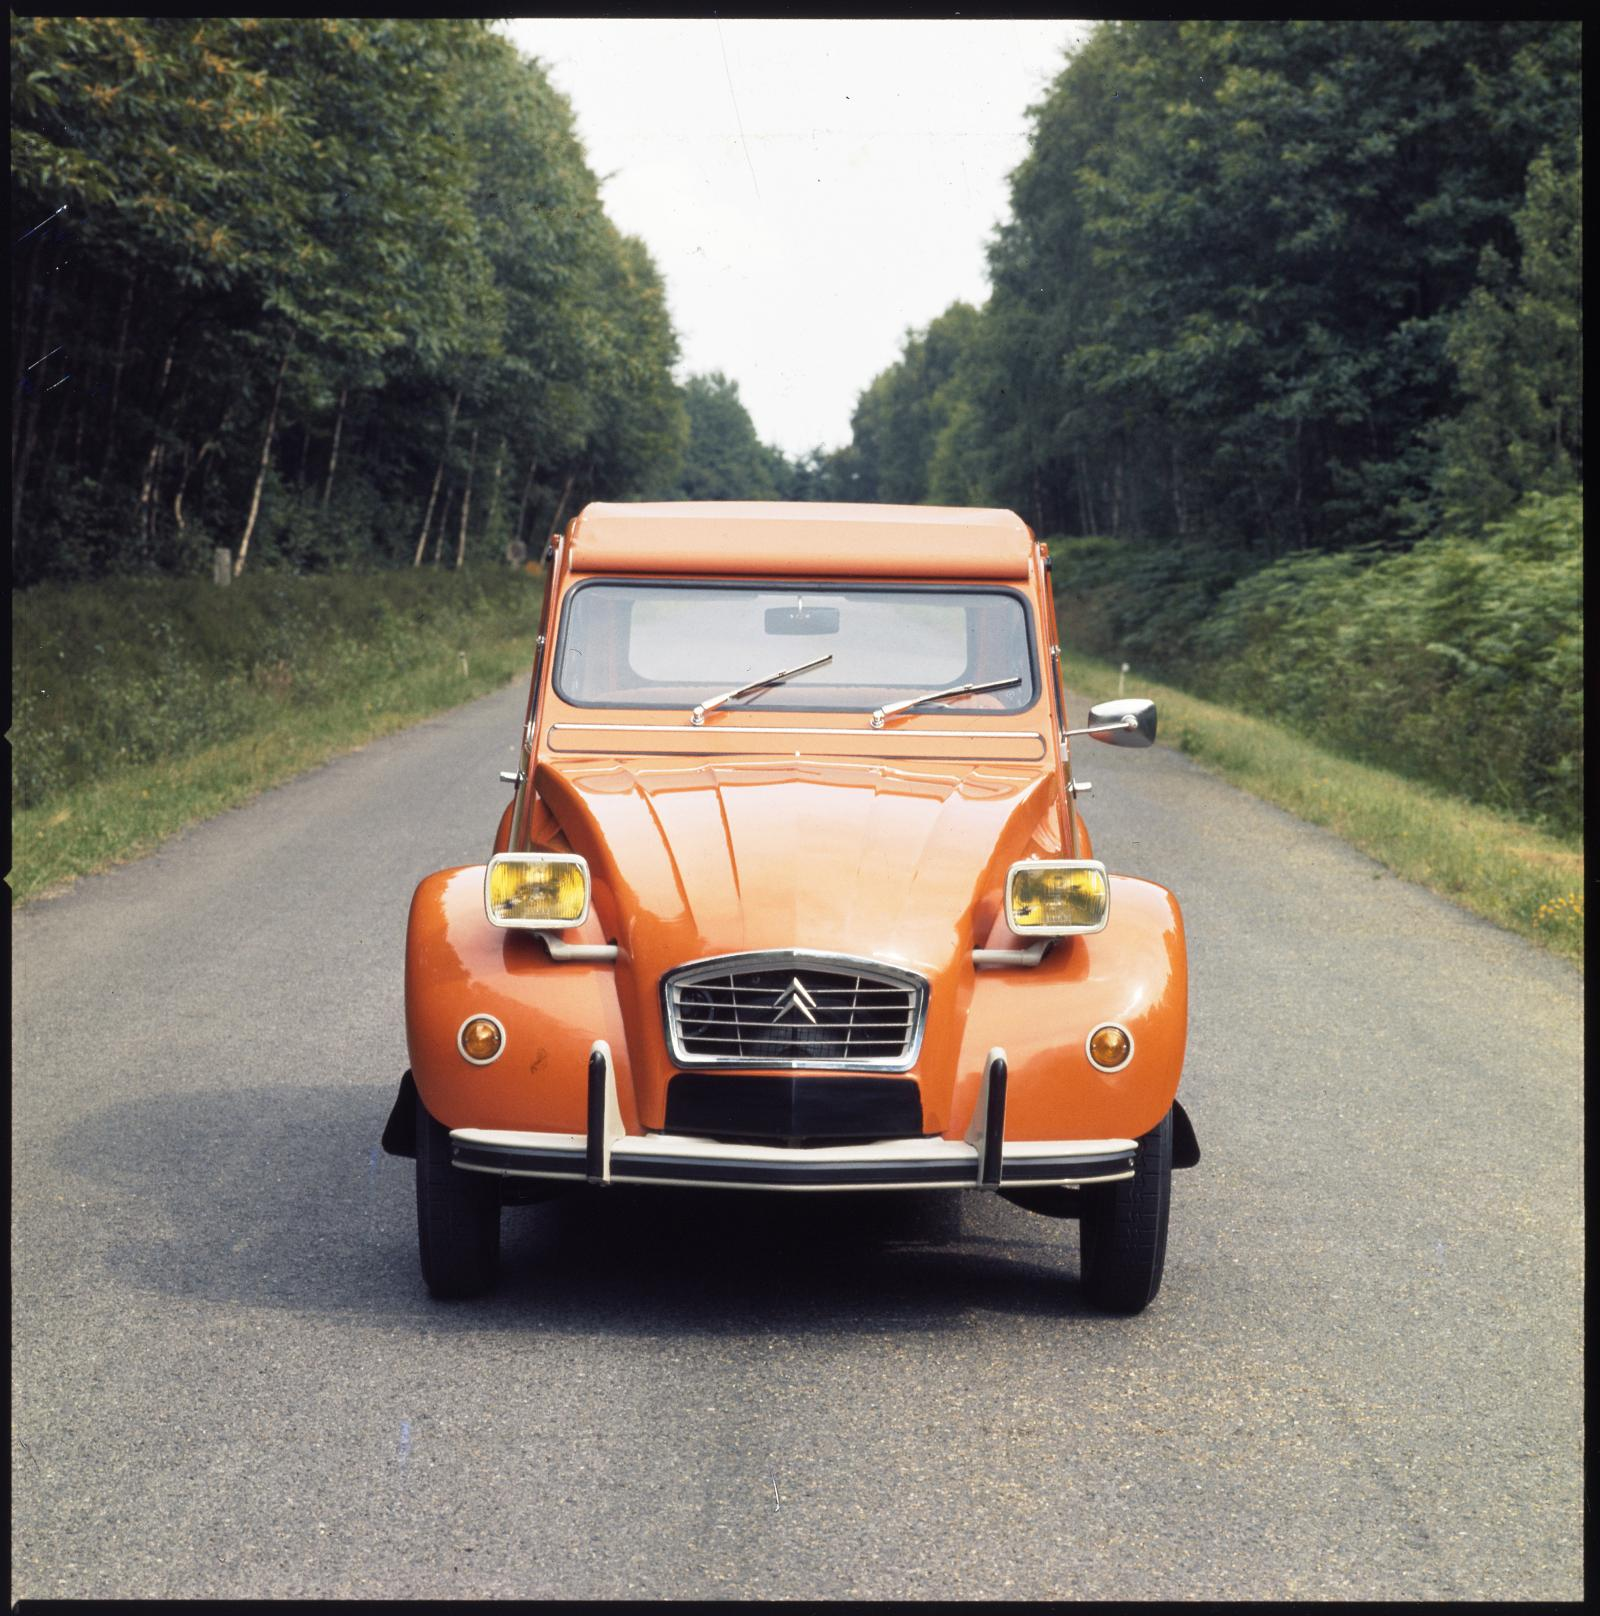 2CV6 1975 front view